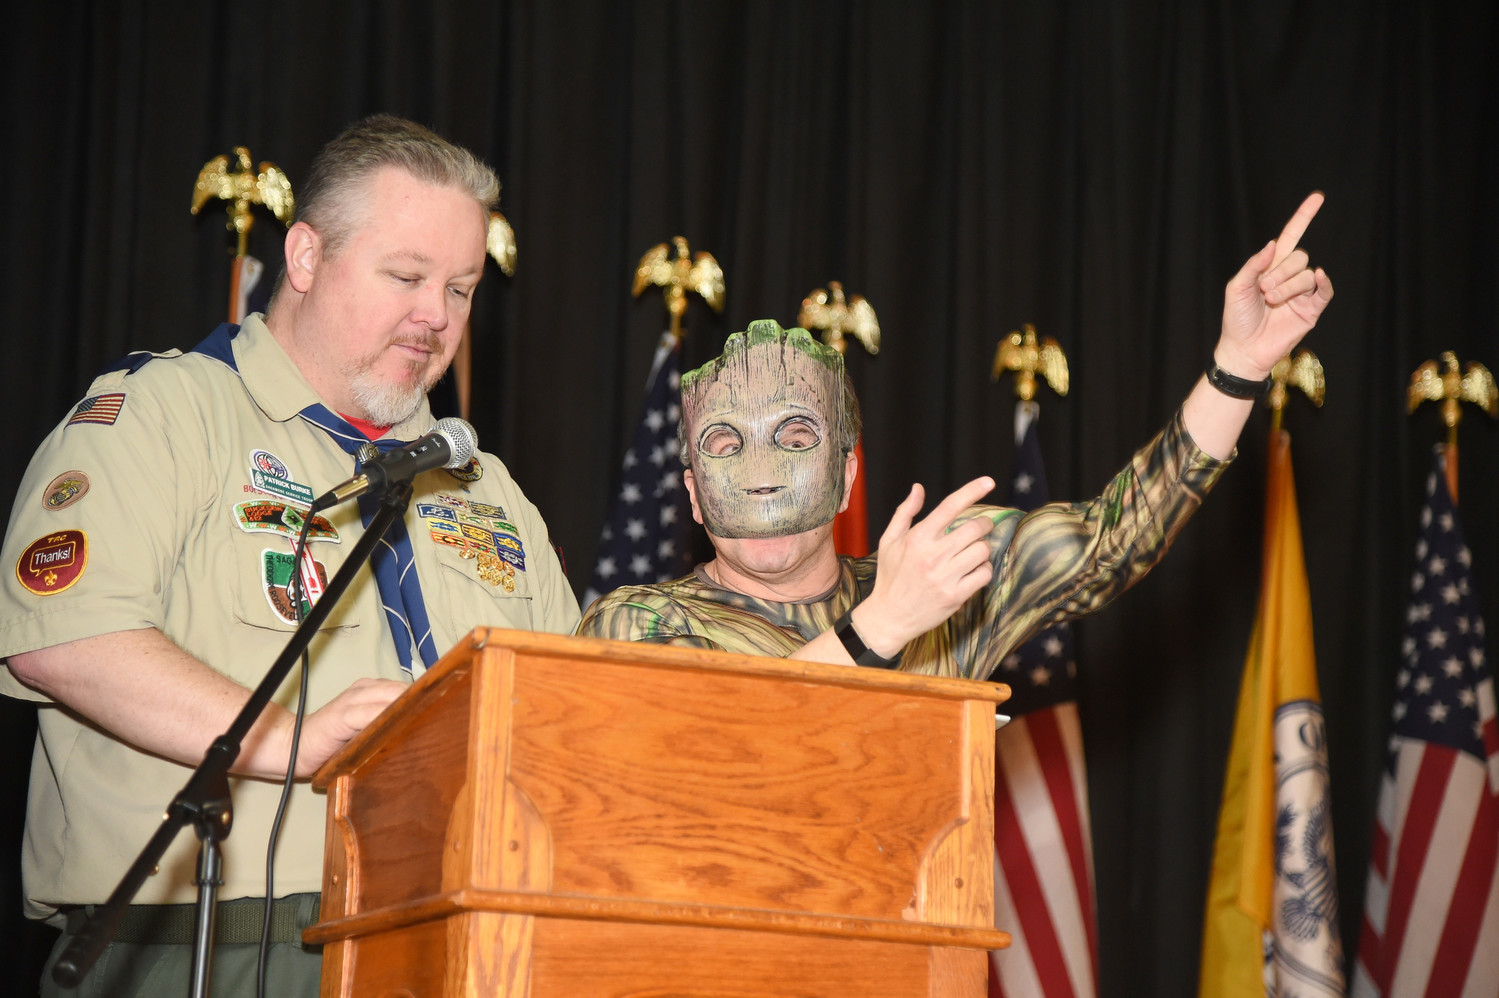 Patrick Burke and Carlos Caban, dressed as Groot, spoke to the Cub Scouts.